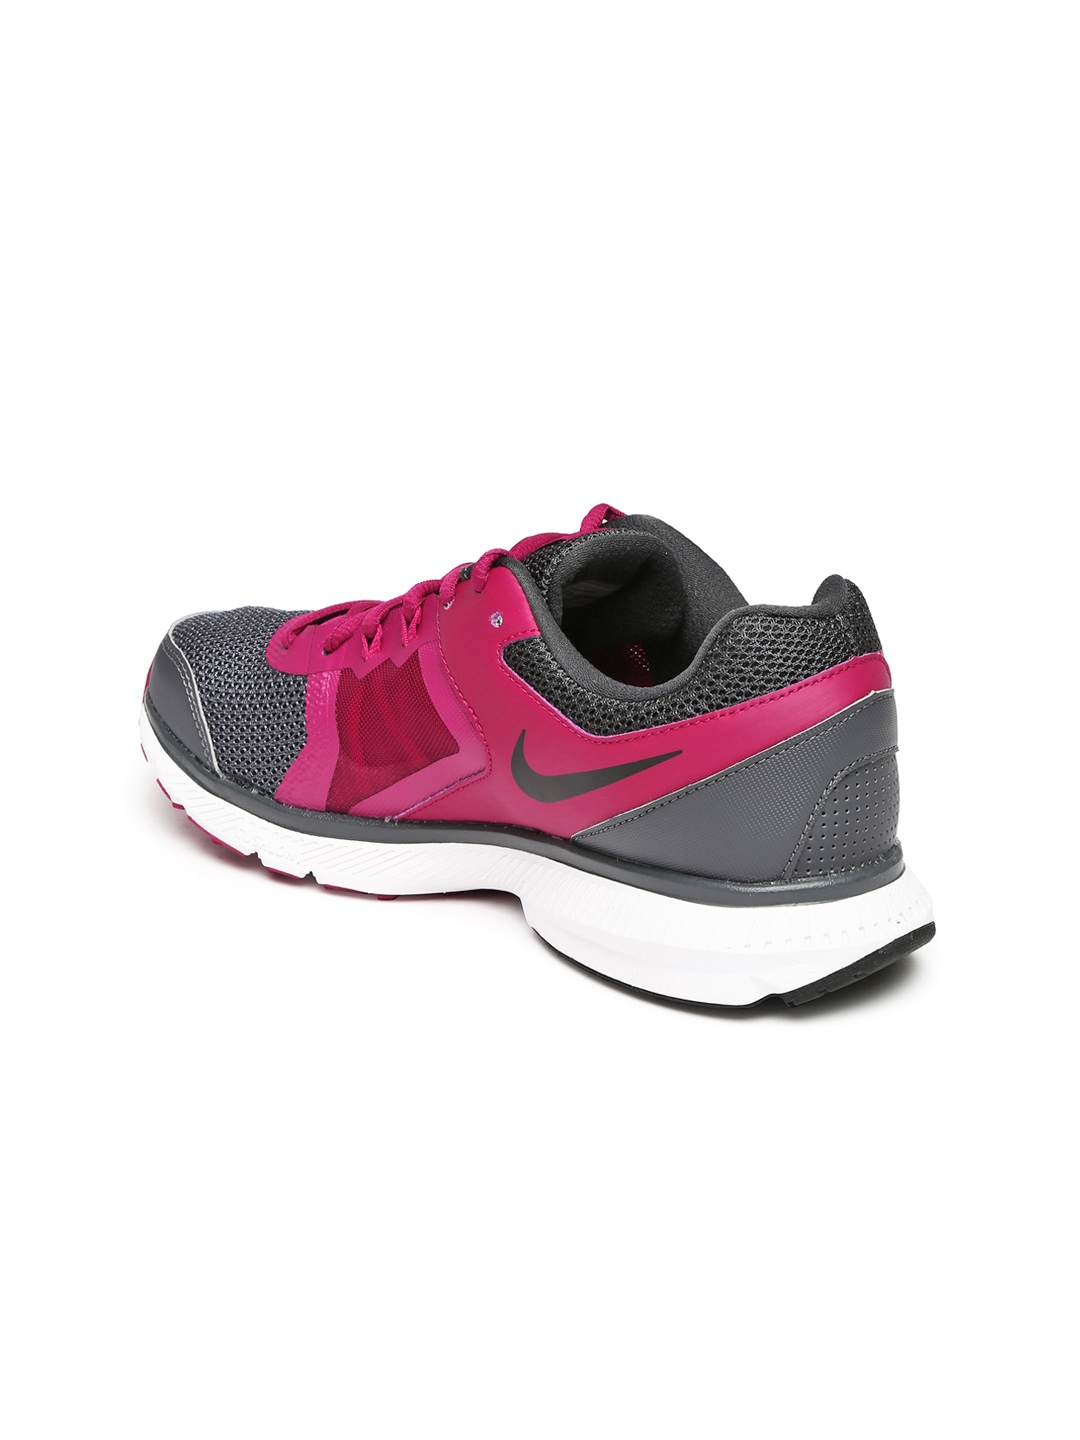 myntra nike grey pink zoom winflo shoes